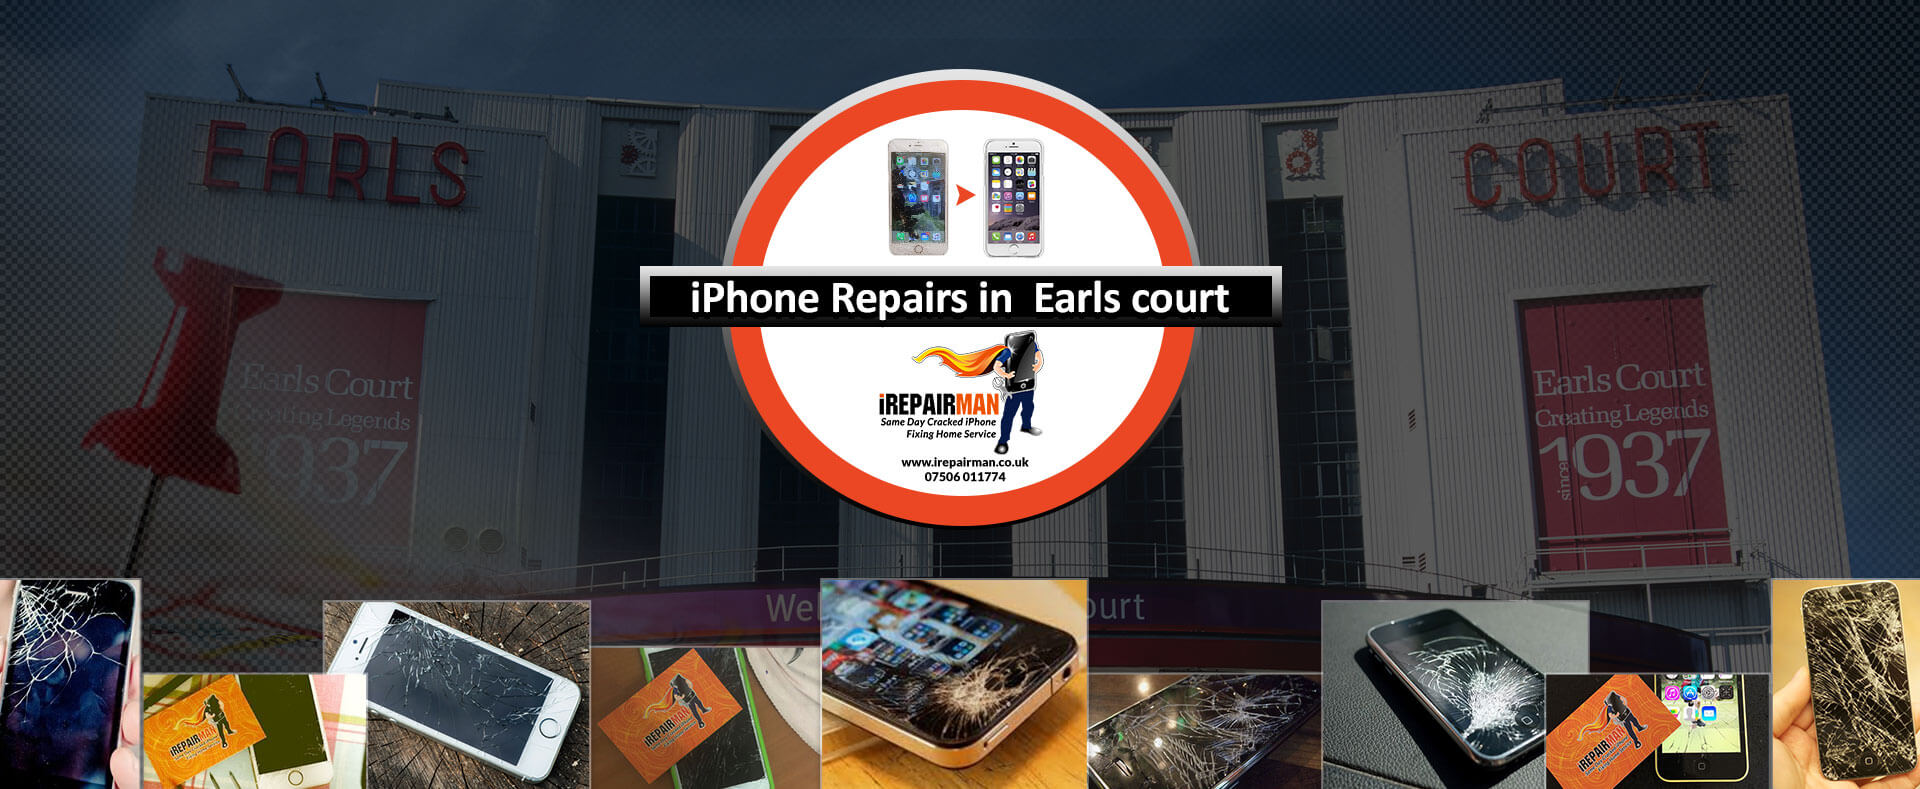 iphone-repairs-in-earls-court